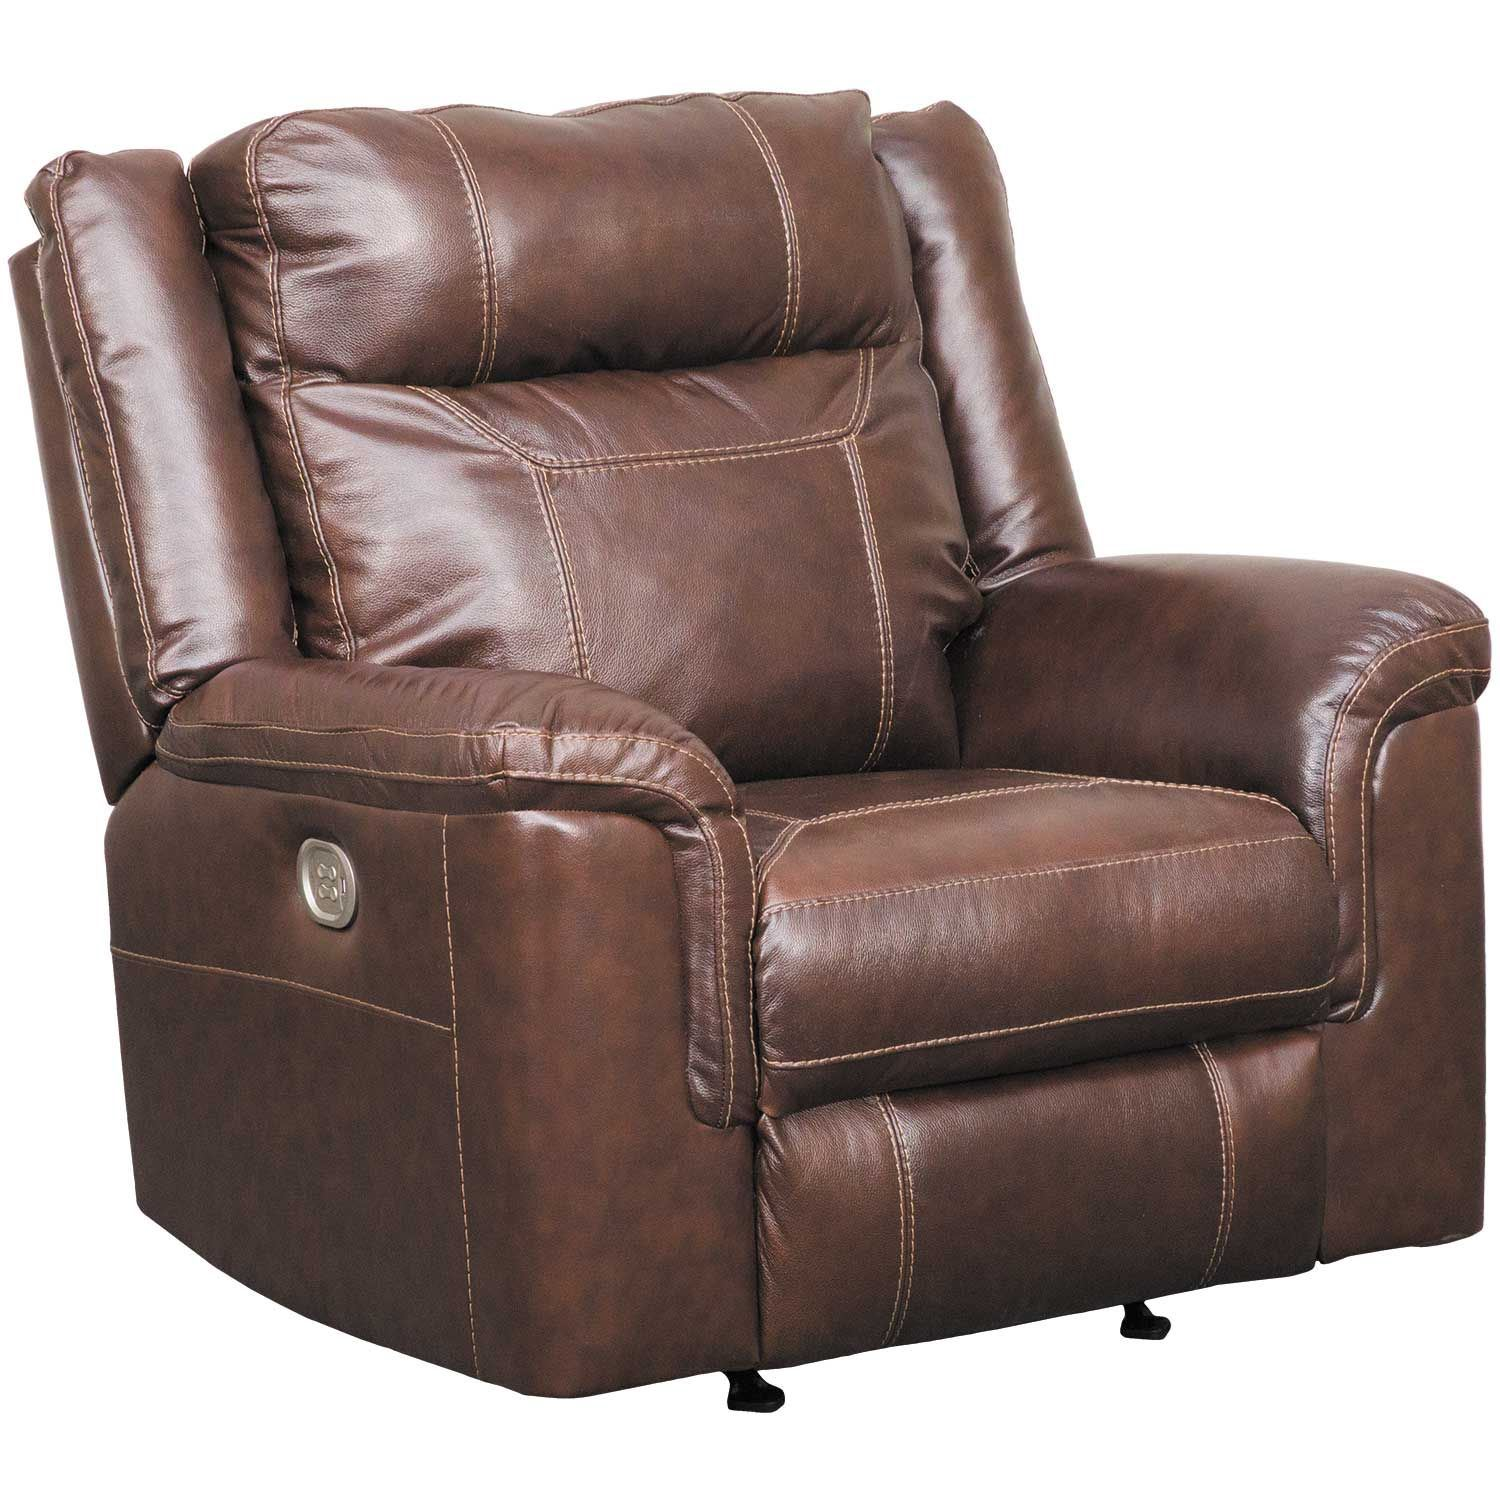 Pleasant Wyline Leather Power Recliner With Adjustable Headrest Pdpeps Interior Chair Design Pdpepsorg